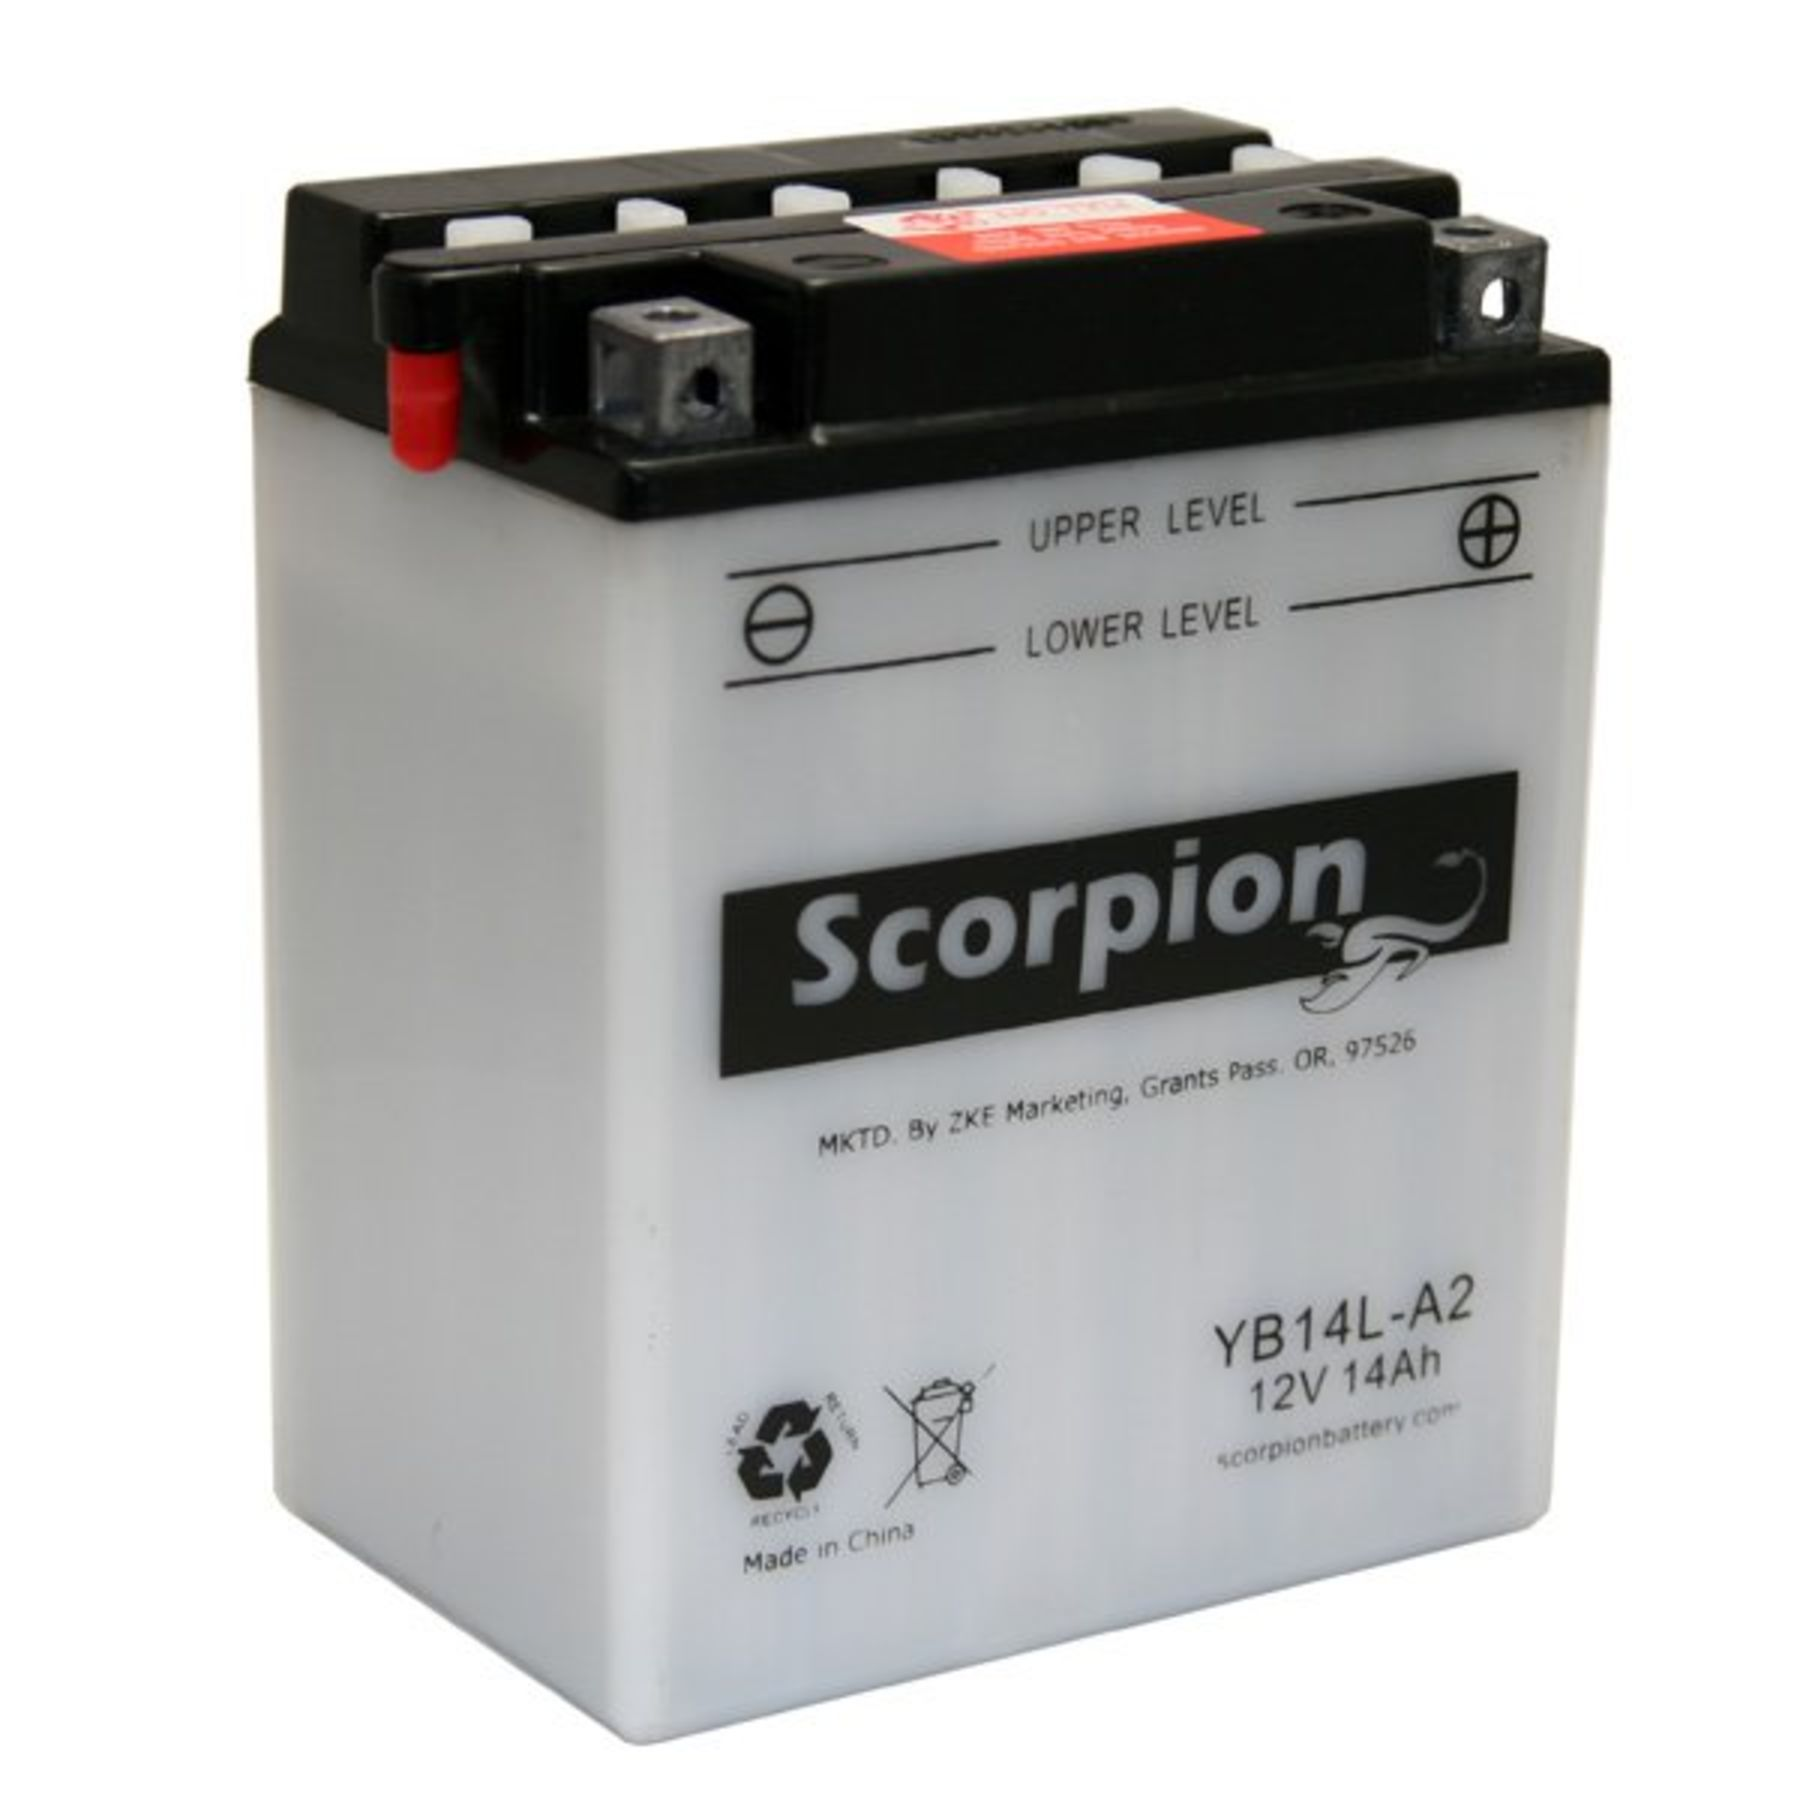 yb14l a2 battery scorpion 12 volt motorcycle batteries. Black Bedroom Furniture Sets. Home Design Ideas